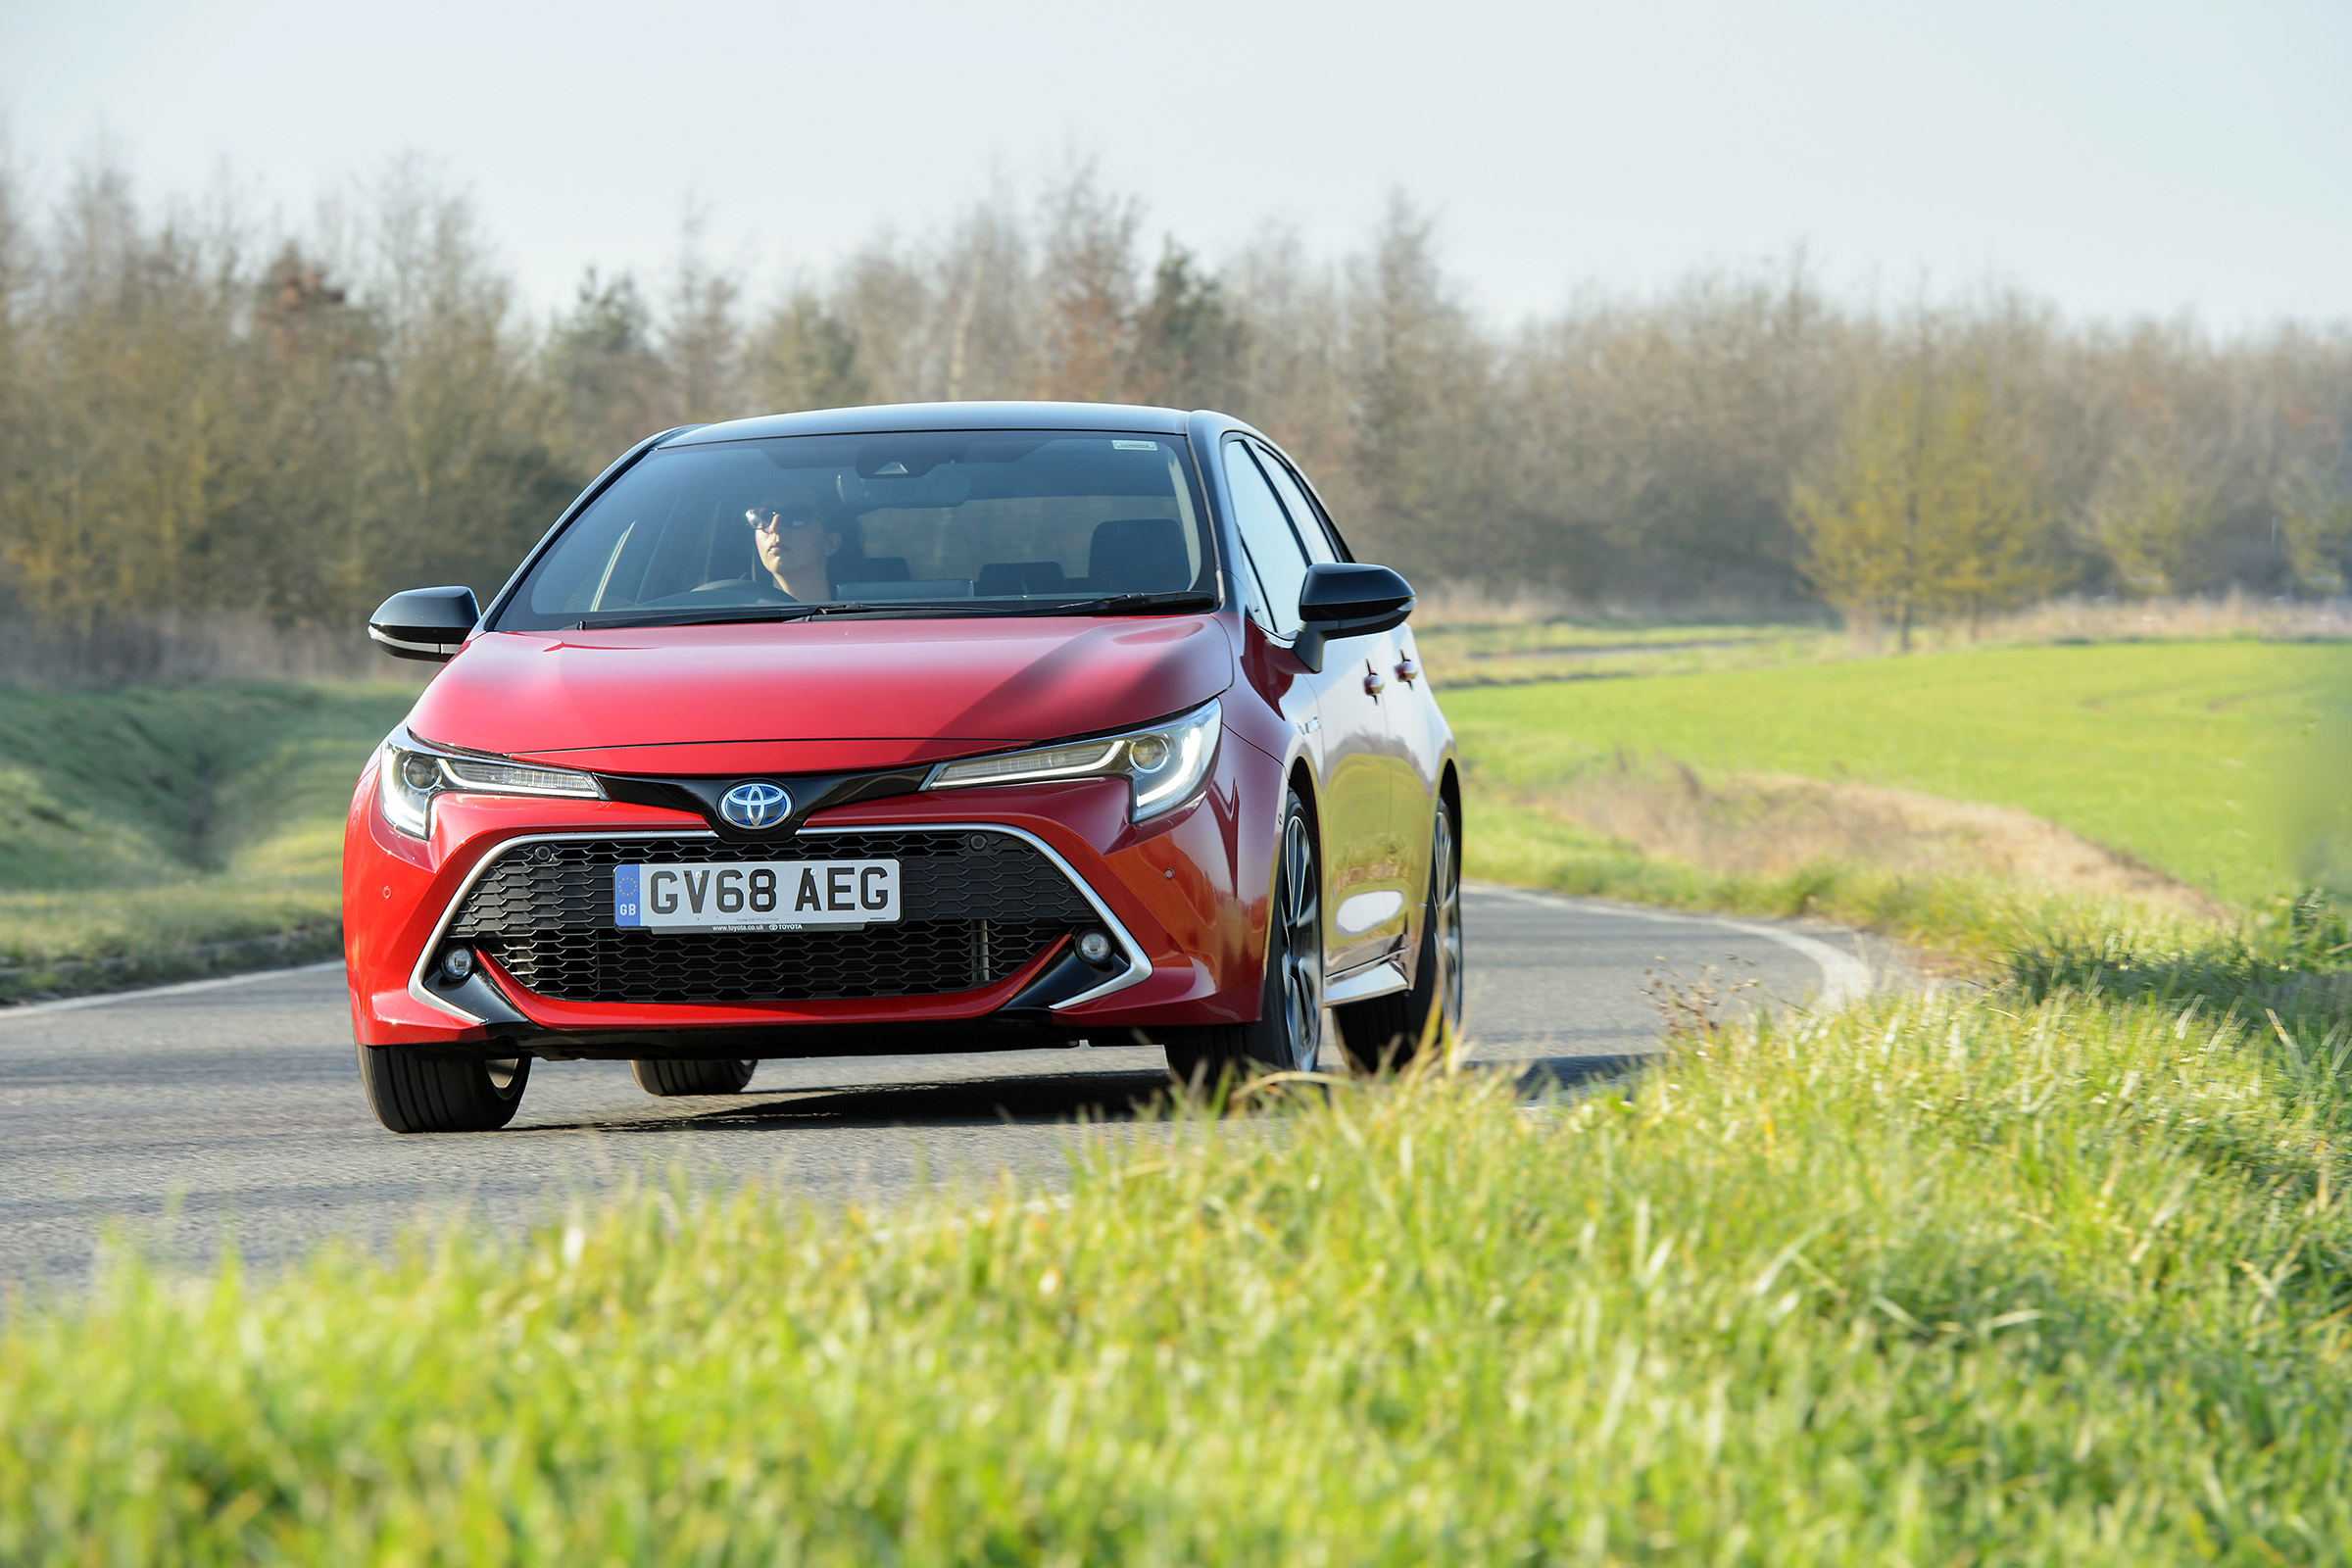 2019 Toyota Corolla hybrid hatch review – there's a good